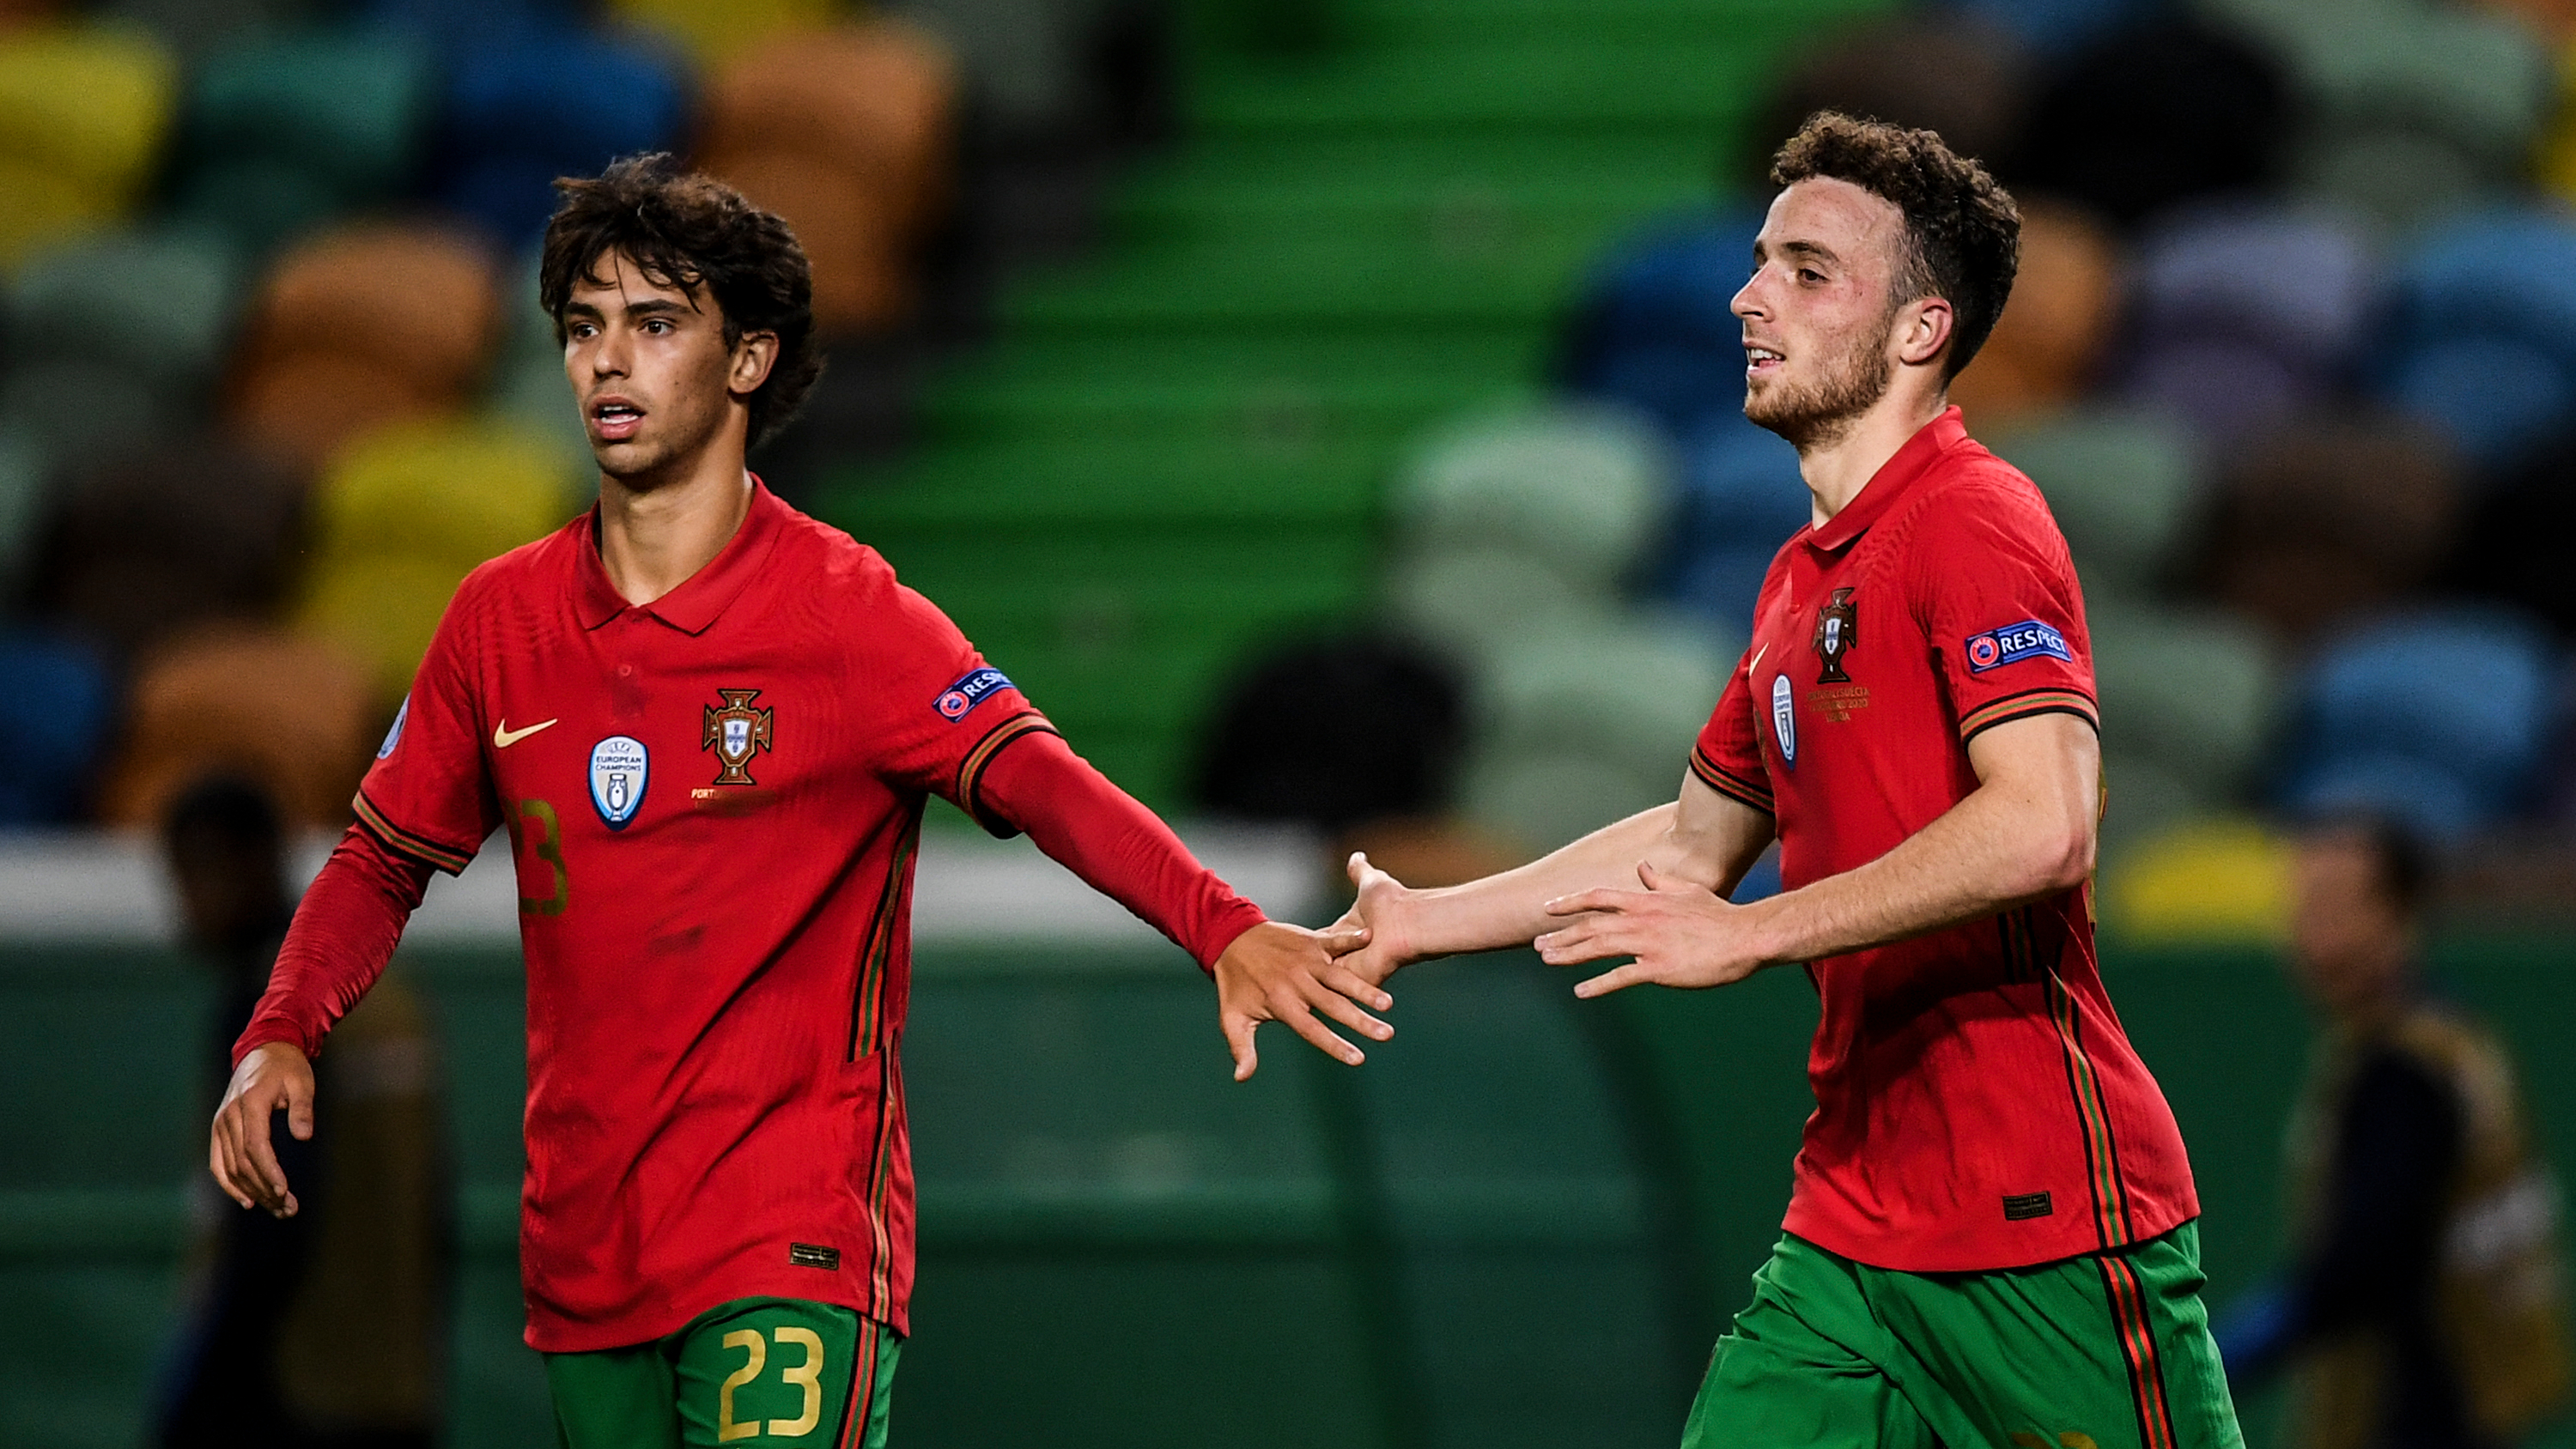 There was no pressure to replace Ronaldo for Portugal - Jota